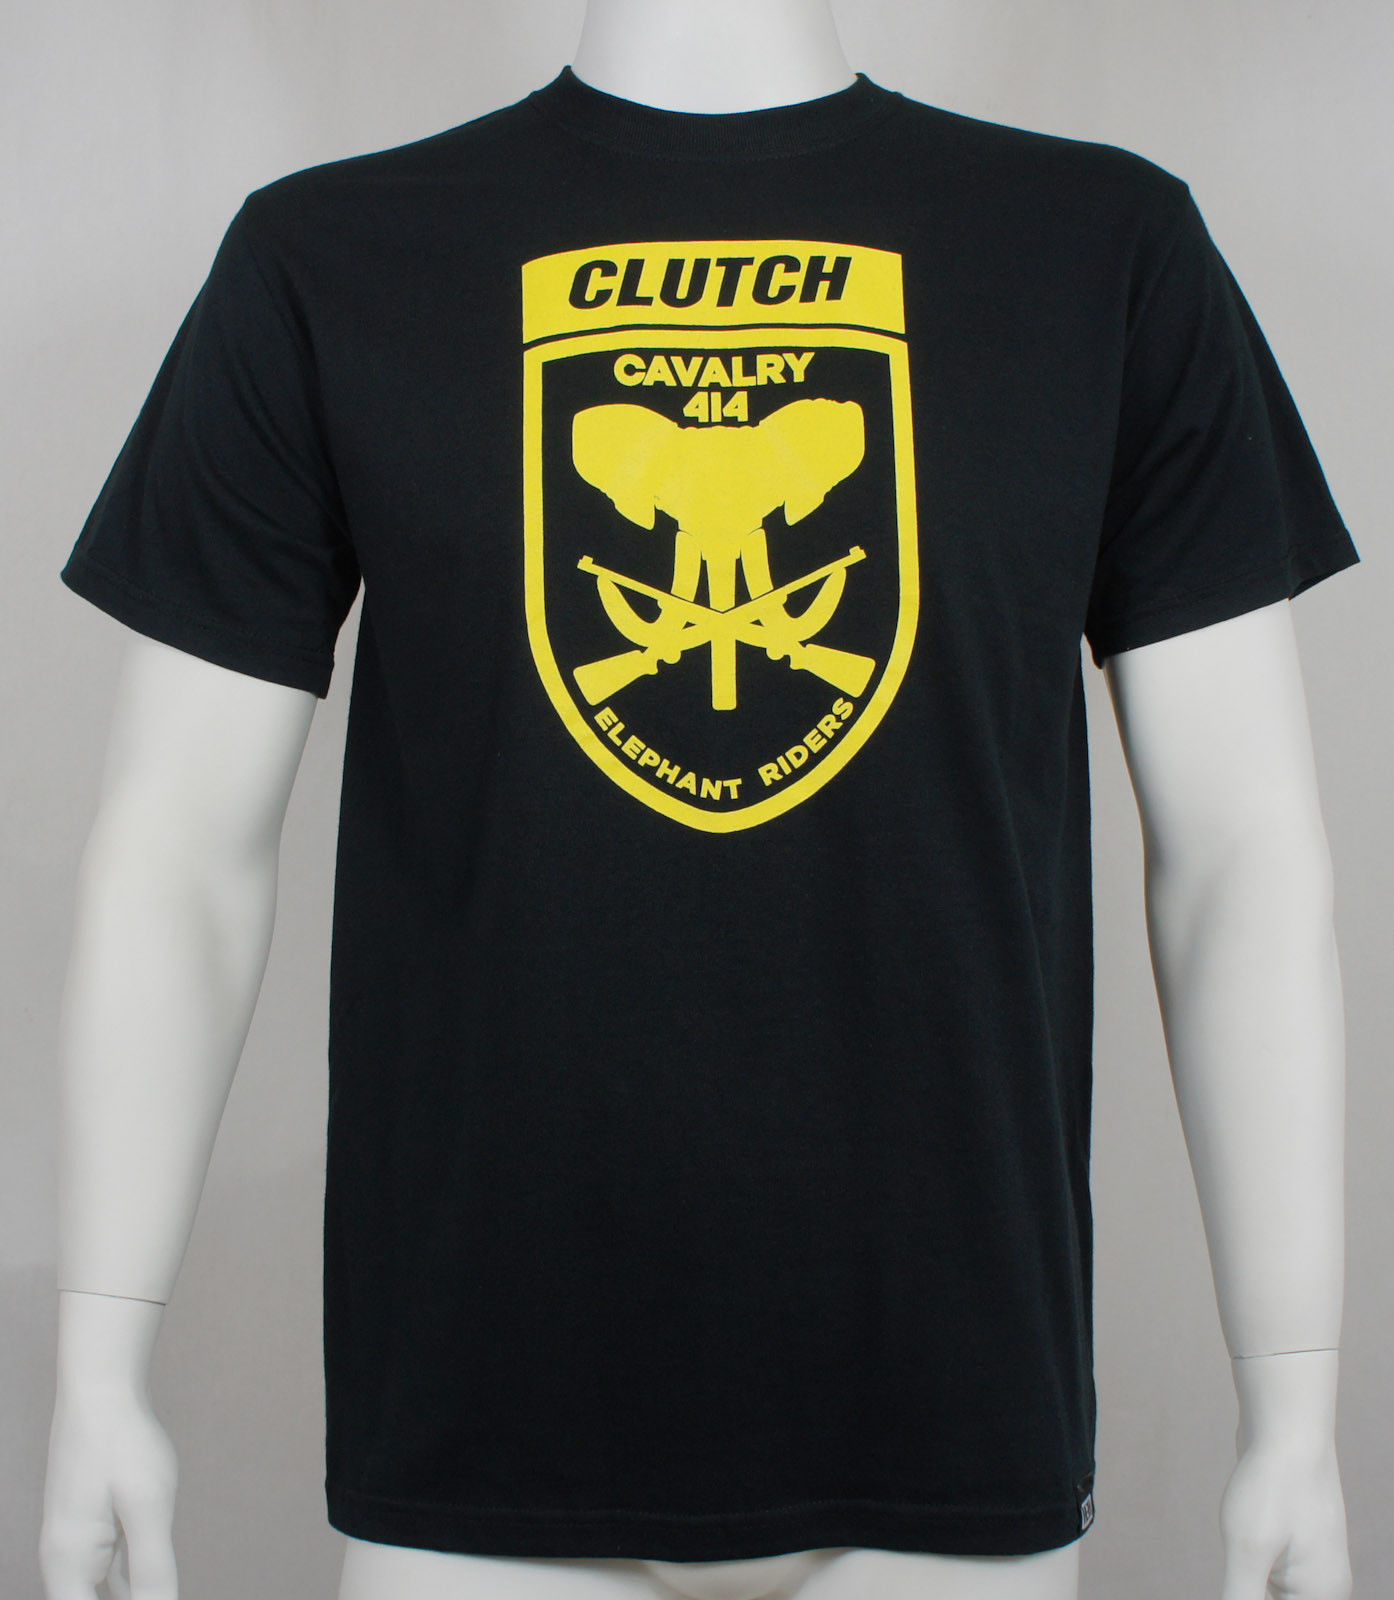 Authentic CLUTCH Band Elephant Riders Logo T-Shirt S M L XL XXL NEW